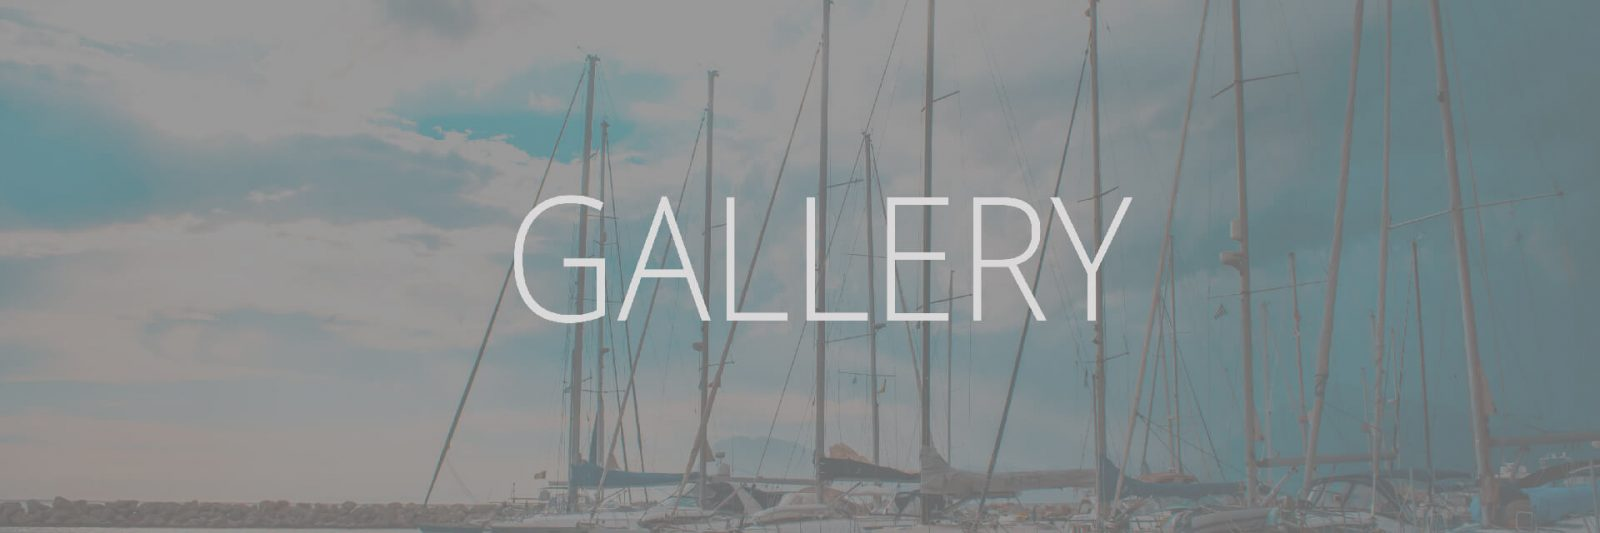 Image Gallery of sailing yachts by sailingyachts.gr